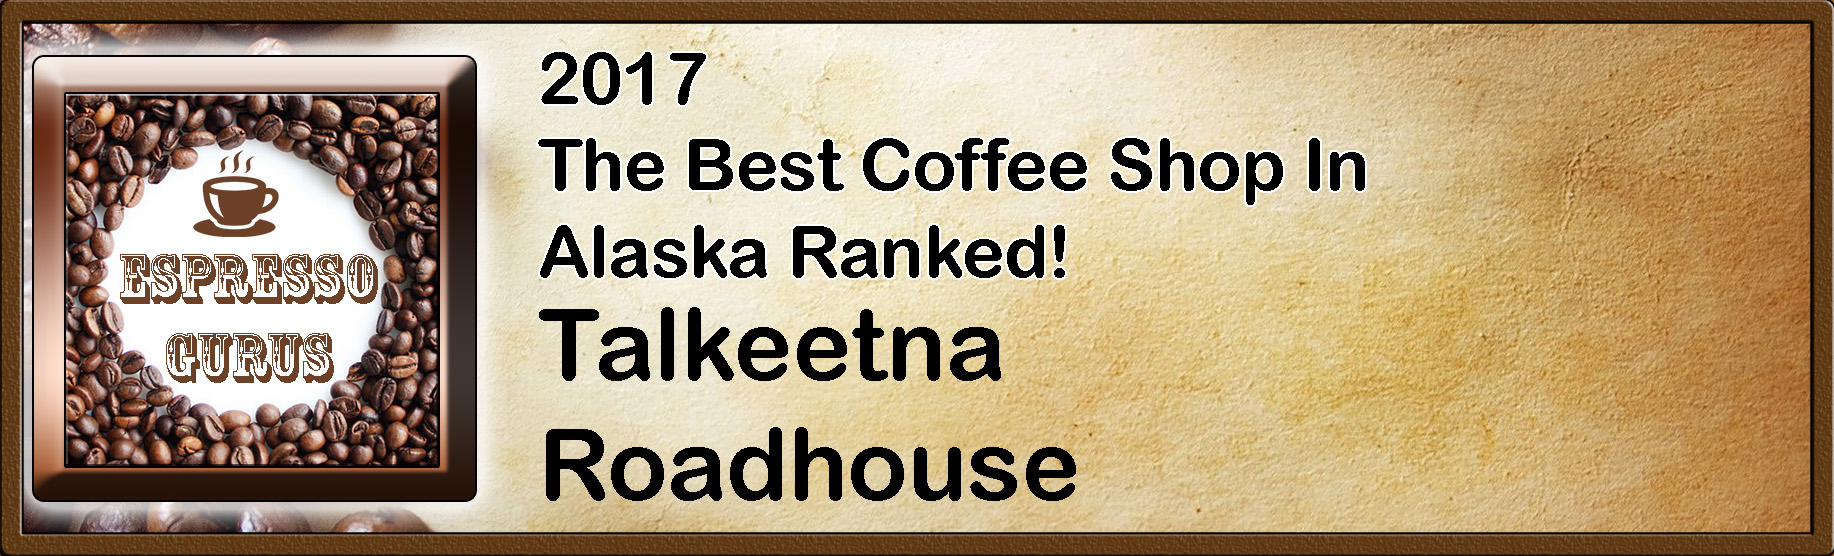 The Best Coffee Shop In Alaska Ranked - 2017